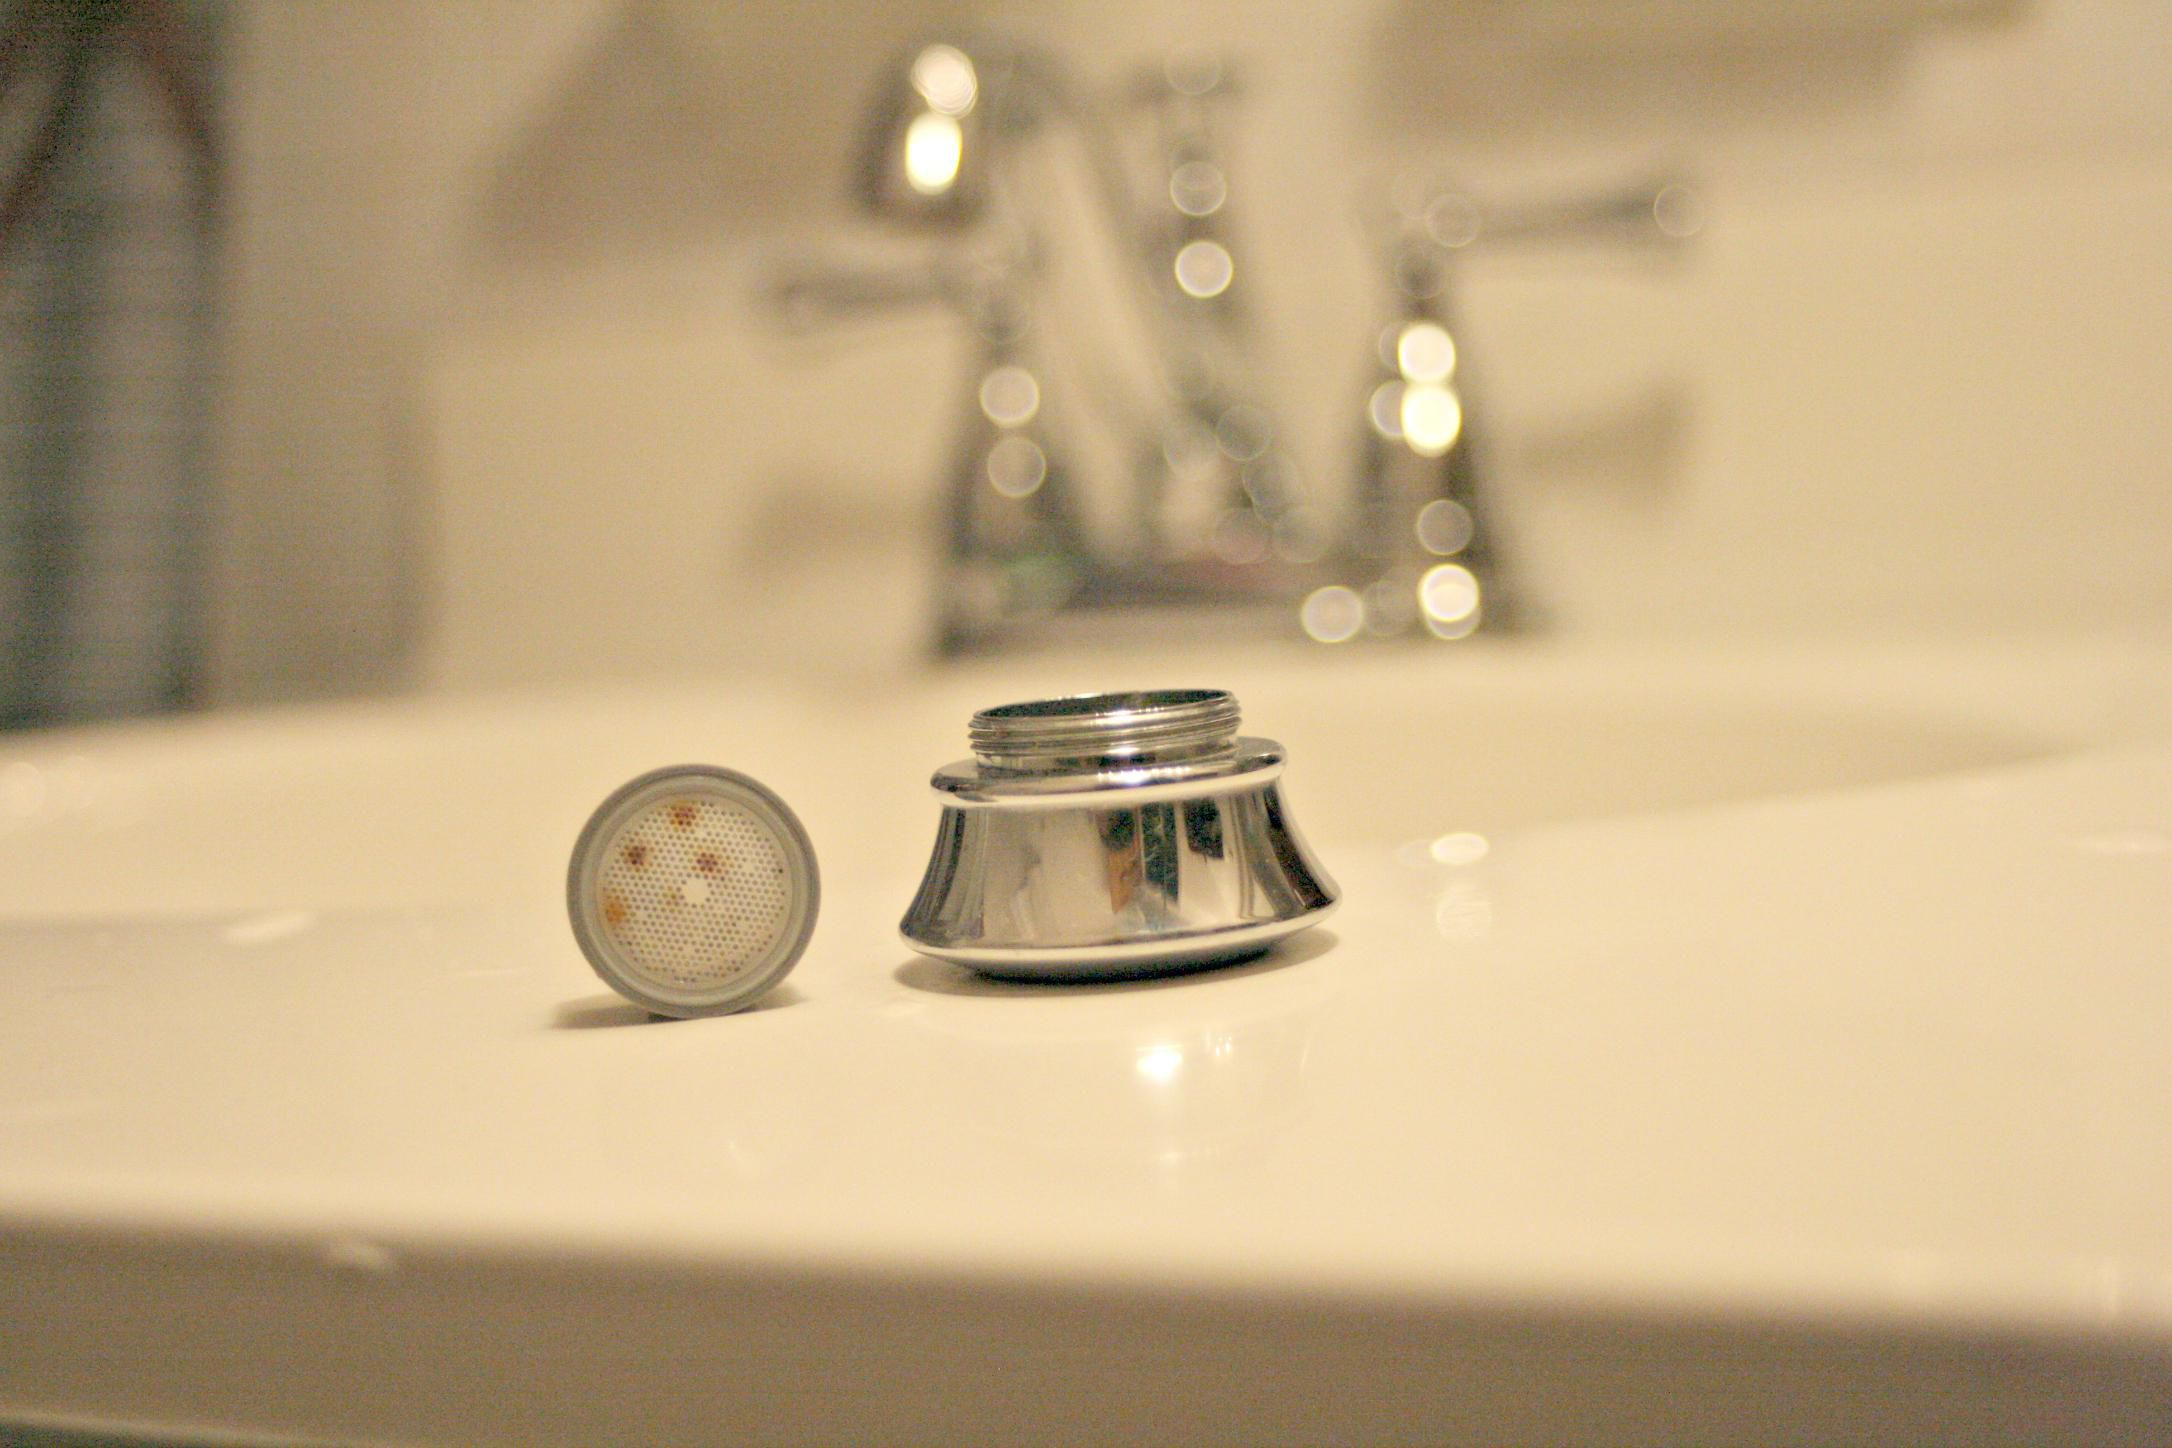 faucet aerator with on off switch. Removing A Faucet Aerator Why You Need to Install Aerators